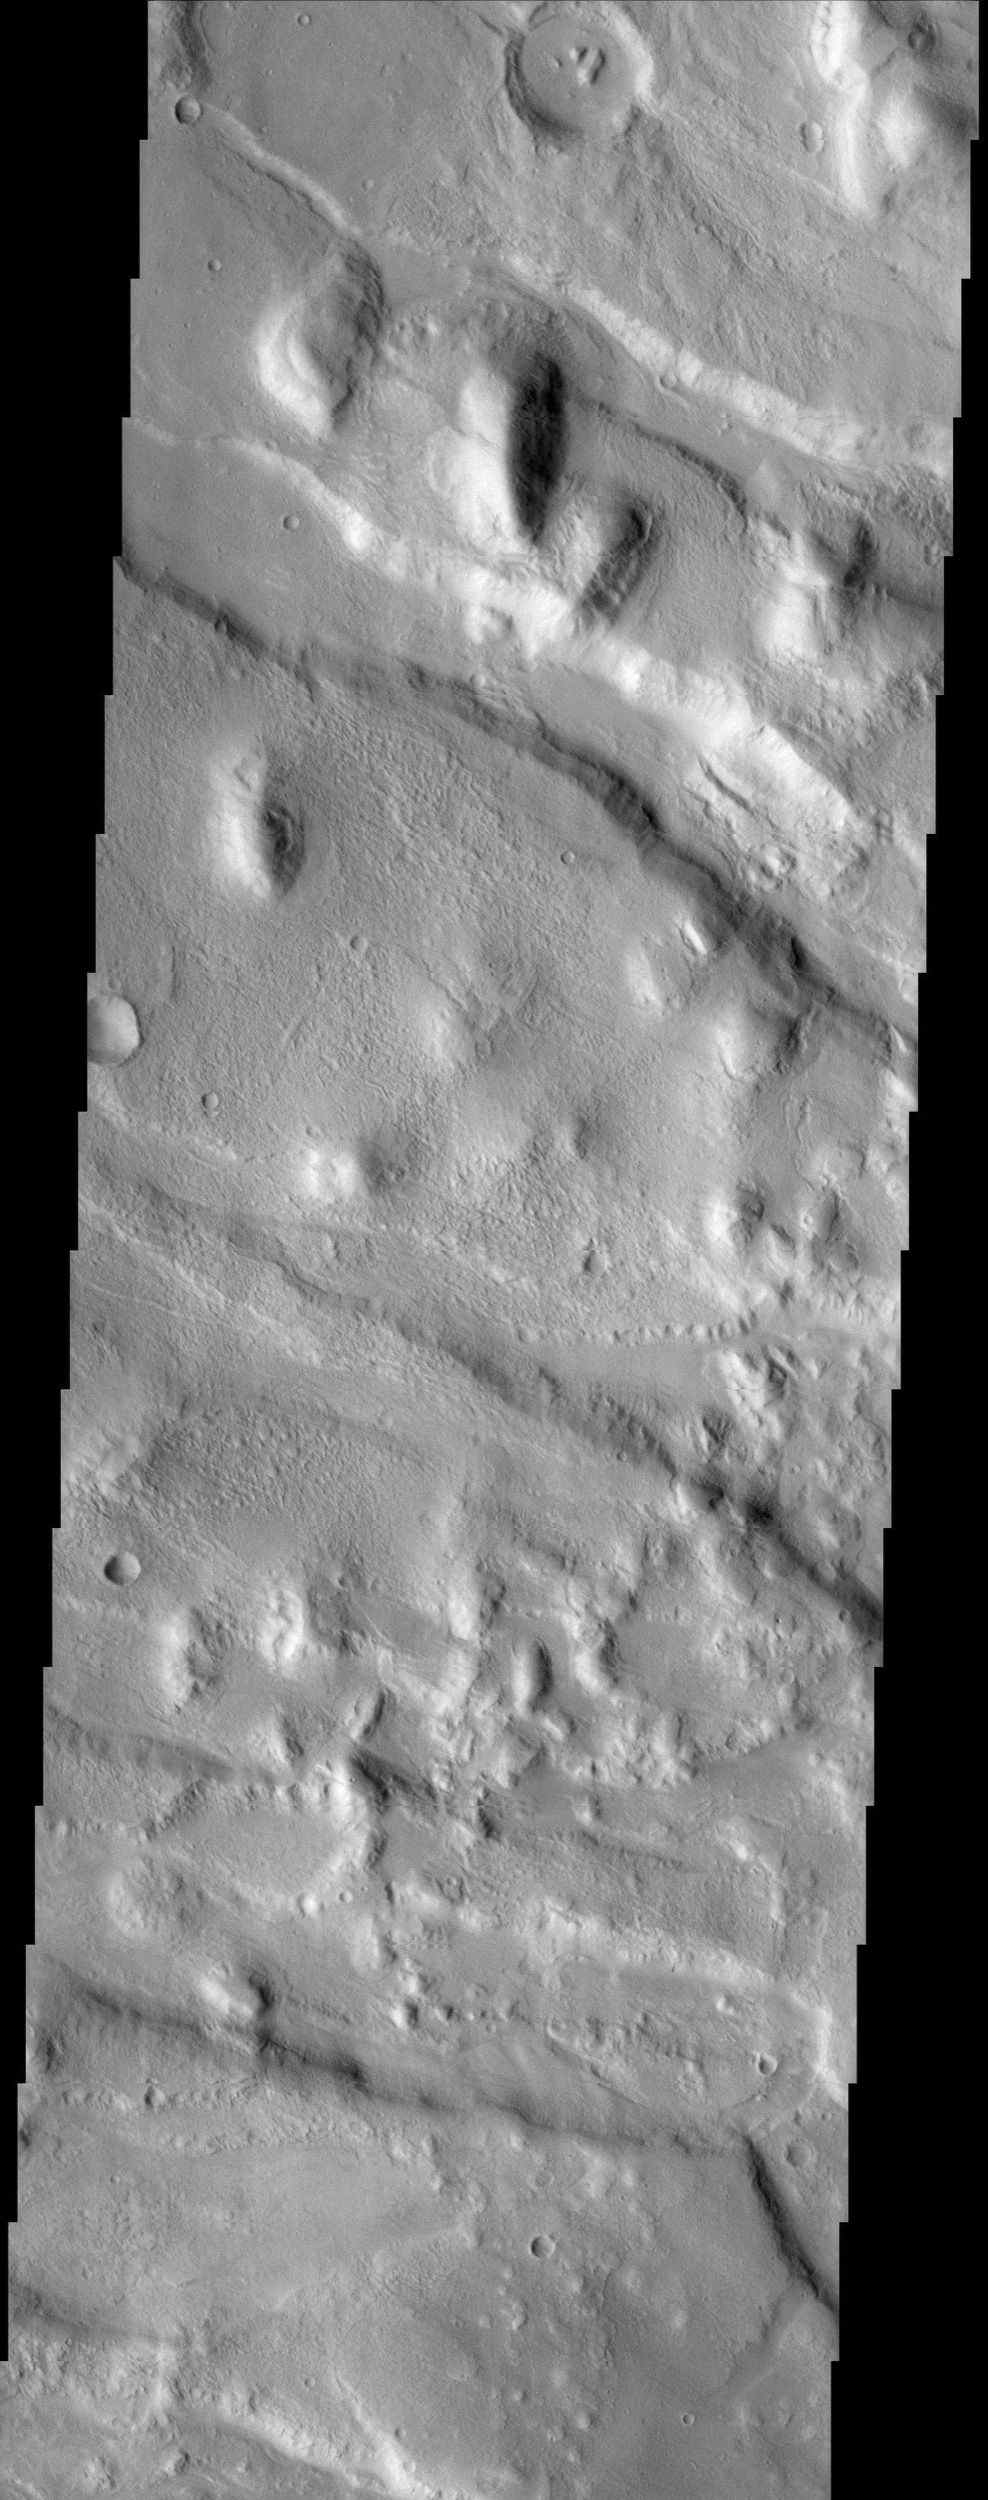 Located north of Olympus Mons and west of Alba Patera, Acheron Fossae, seen in this NASA Mars Odyssey image, provides a record of early tectonic activity in the Tharsis region.